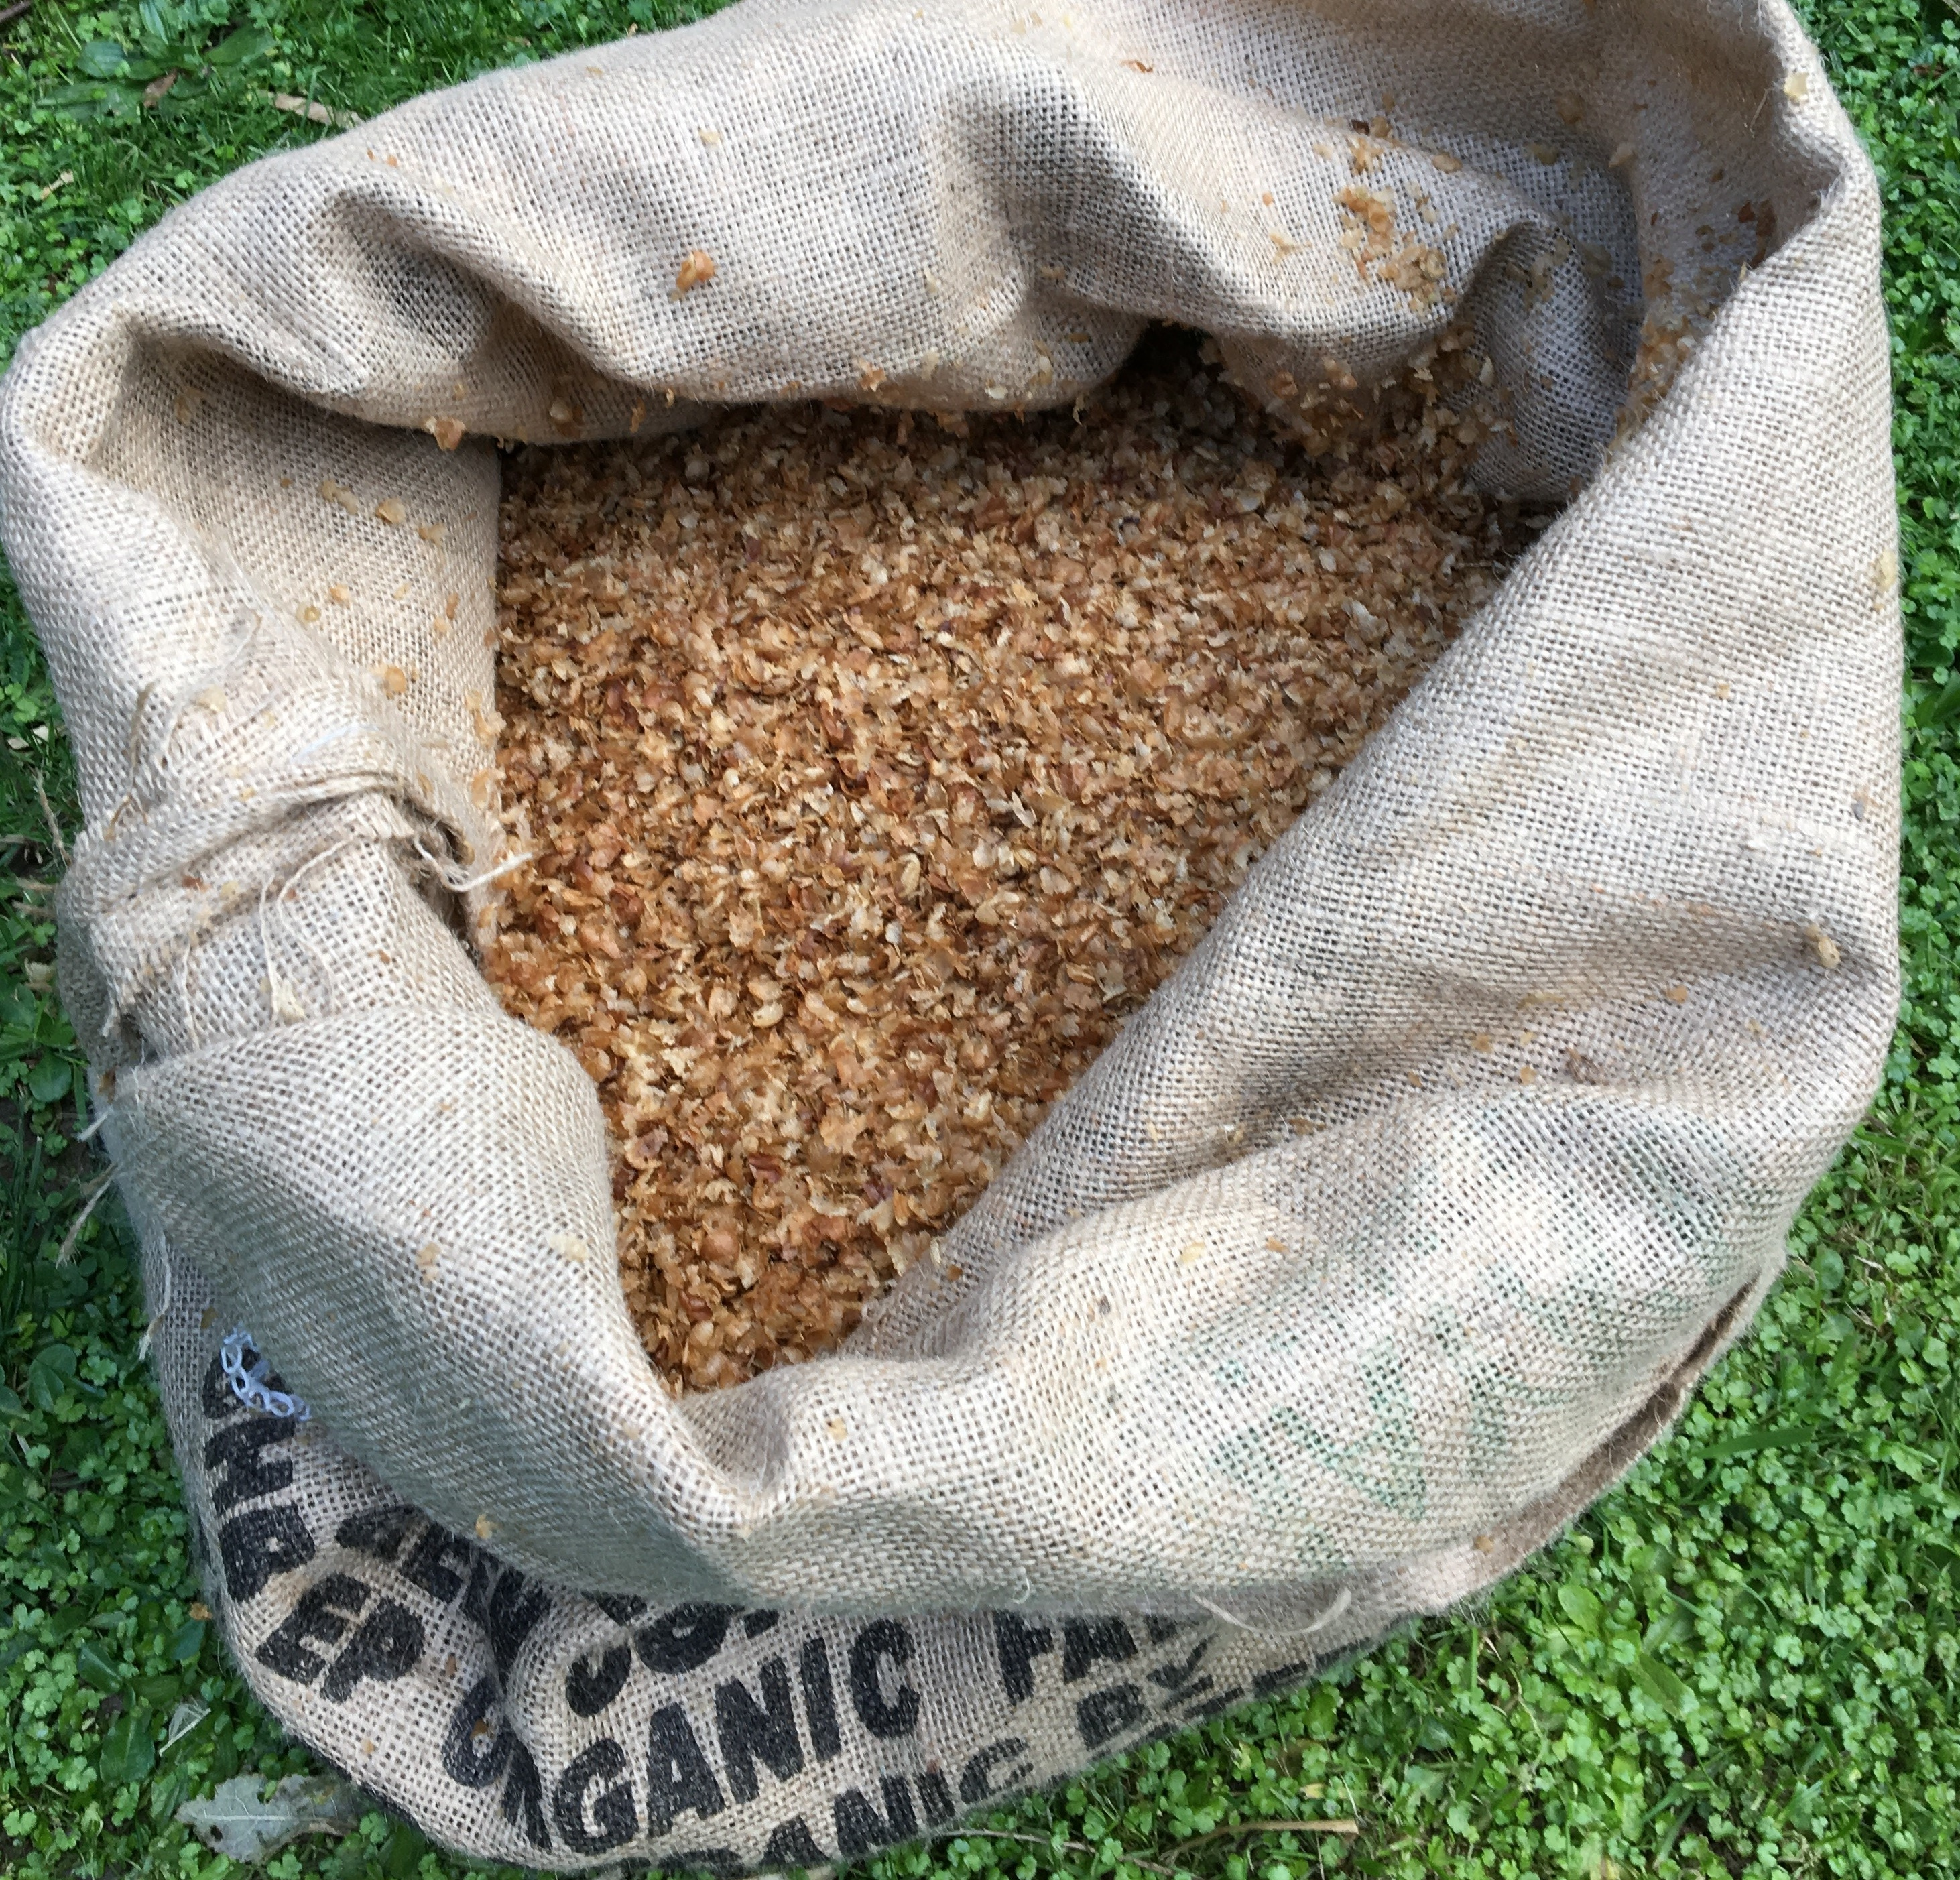 An Aromatic Bag Of Coffee Chaff